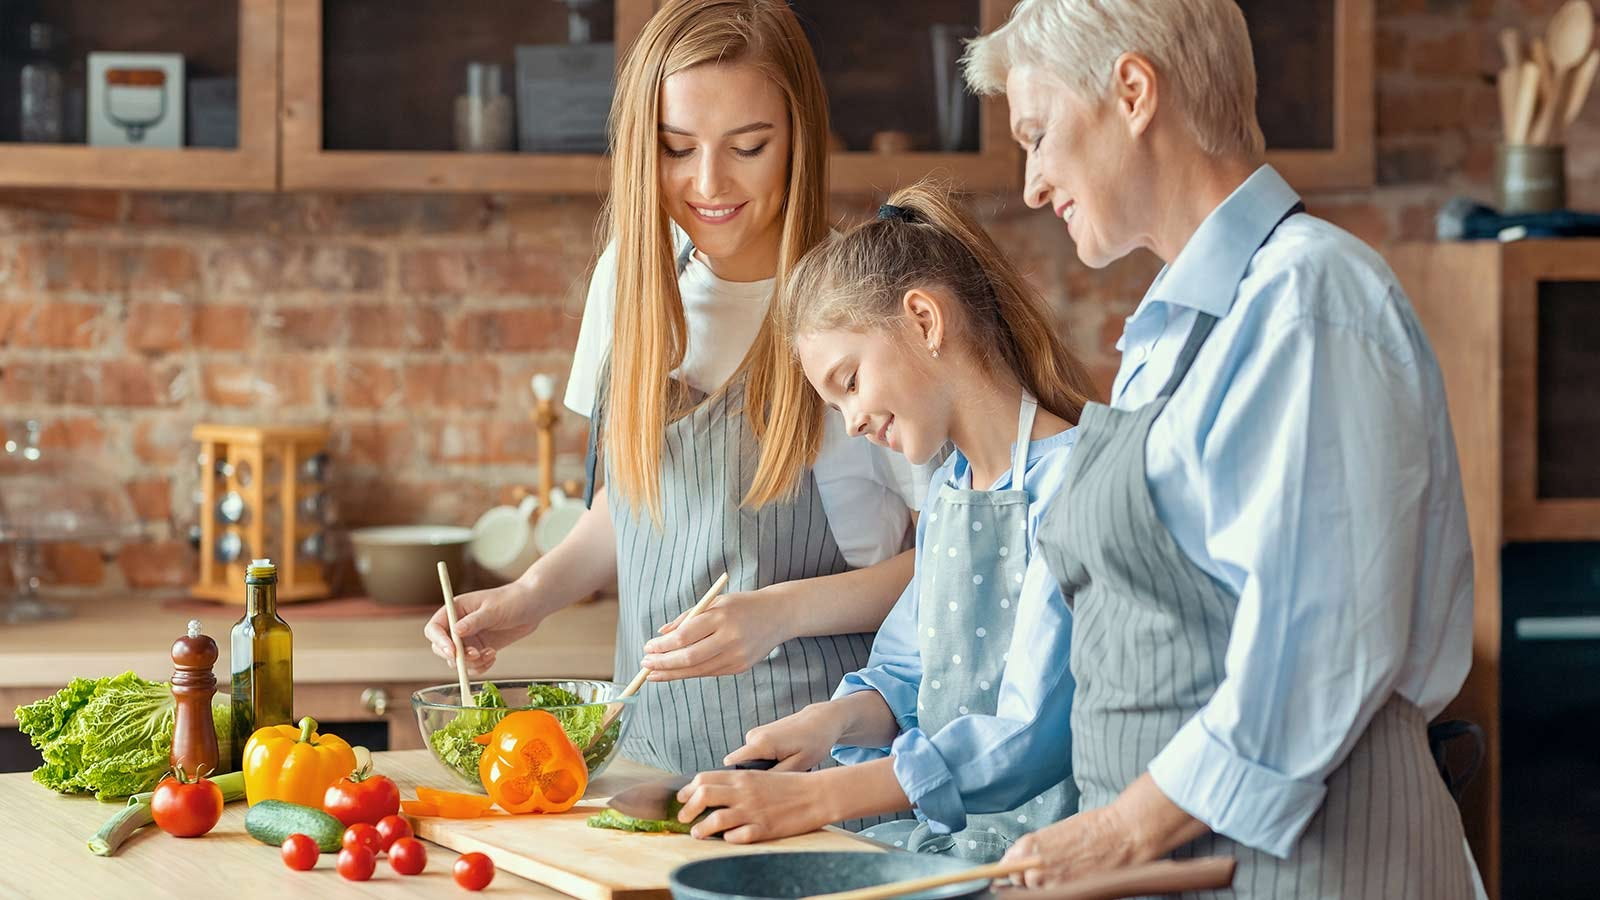 Mother and grandmother, helping a tween girl prepare a meal in a sunny kitchen.